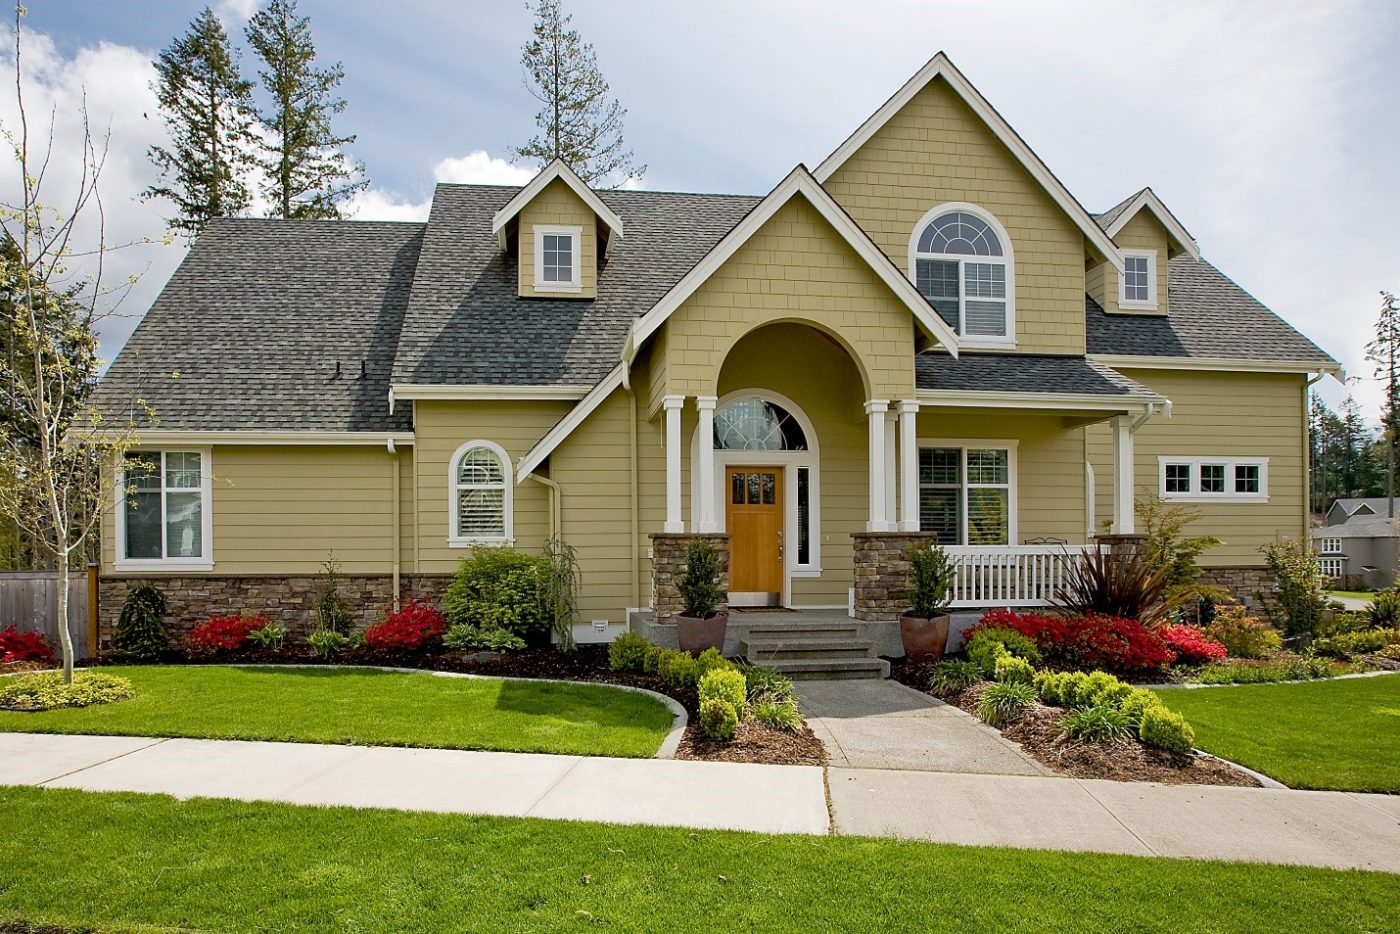 A Beautiful House - Insulated Vinyl Siding in Utah - Advanced Window Products